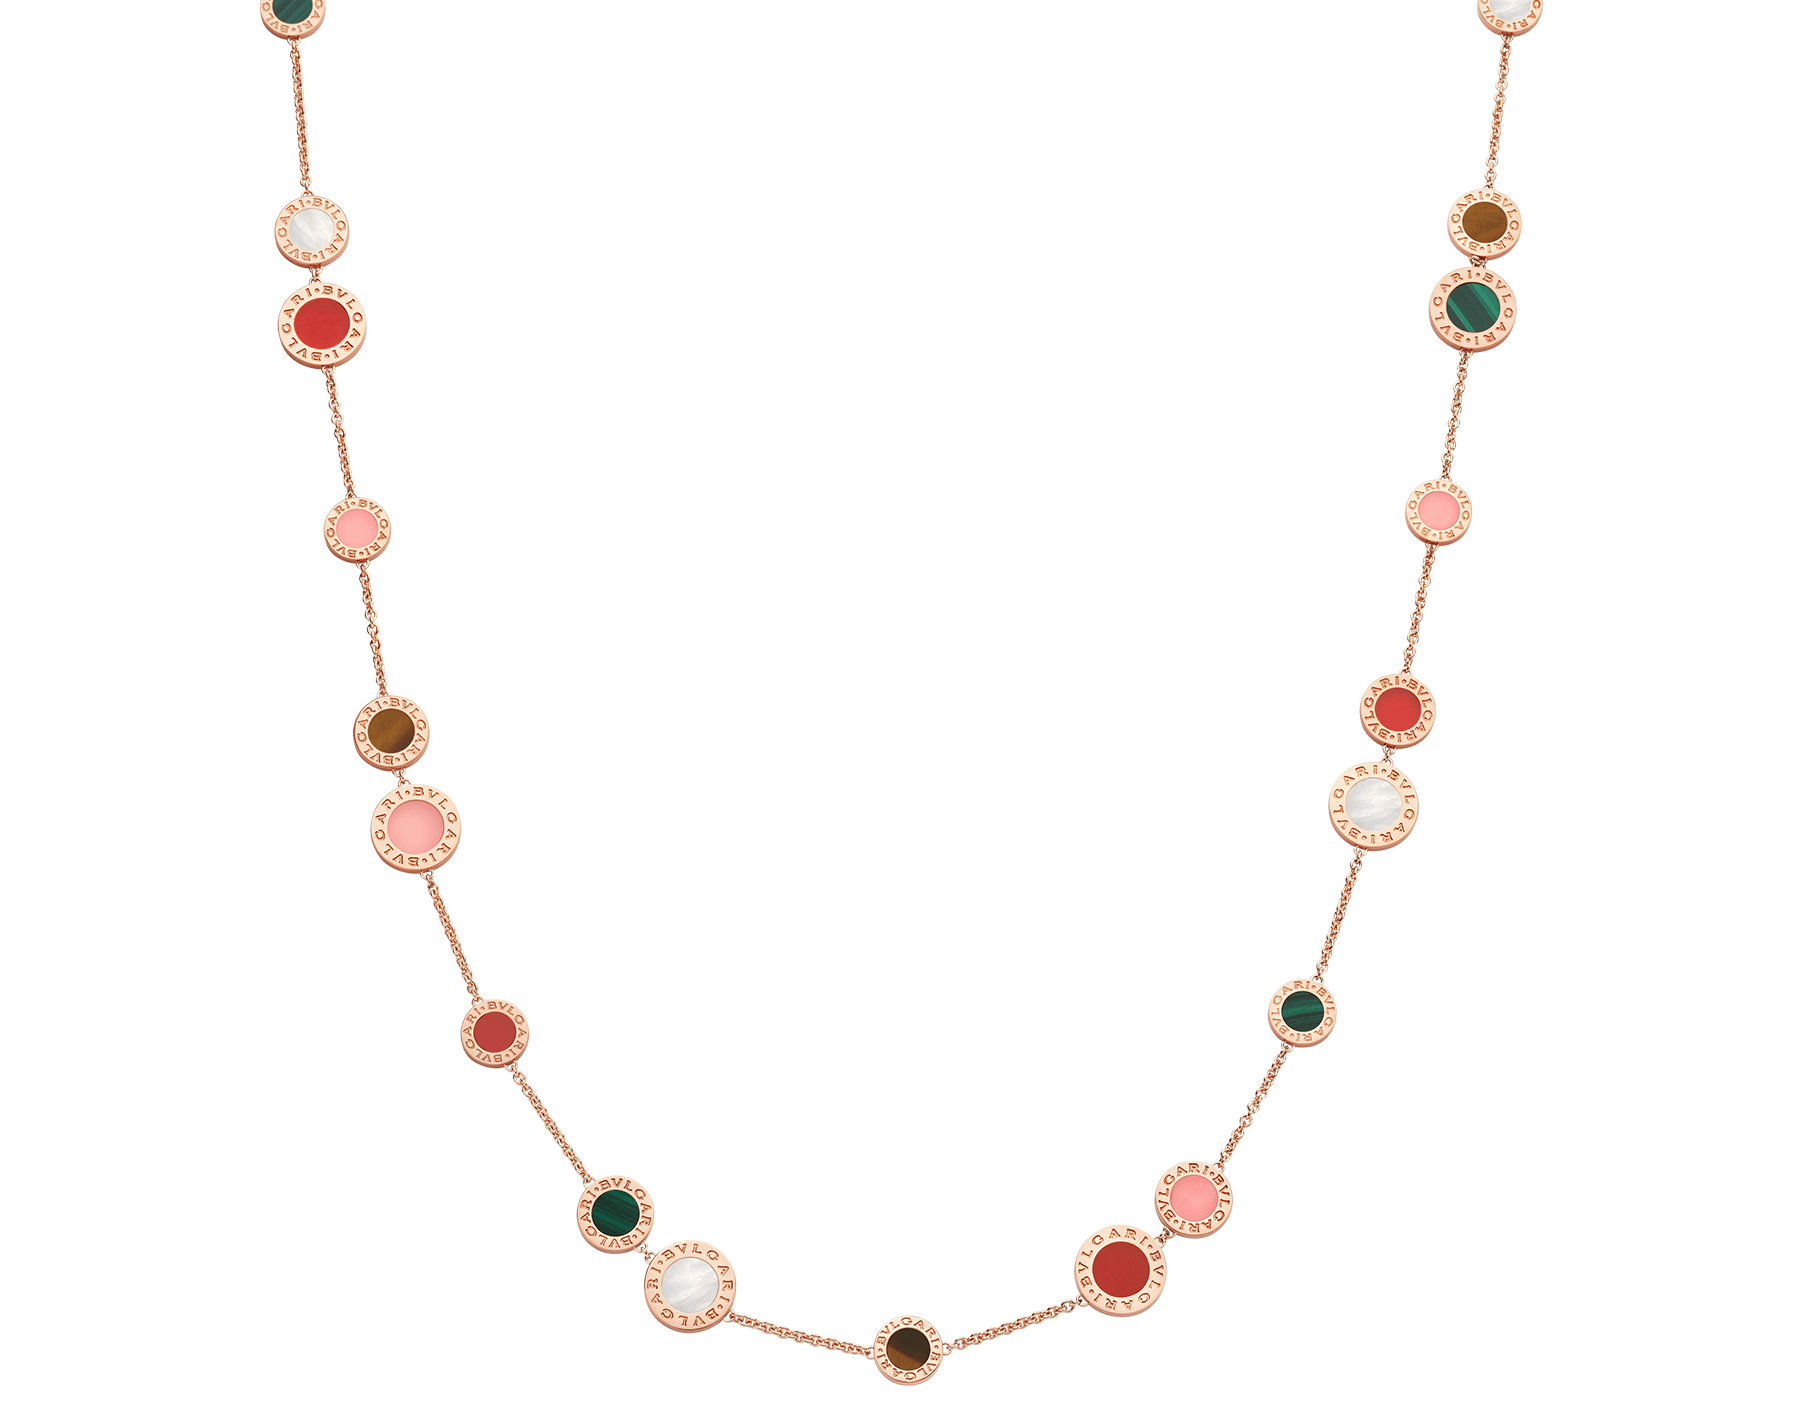 BVLGARI BVLGARI 18 kt rose gold sautoir set with mother-of-pearl, pink opal, tiger's eye, malachite and carnelian elements 356225 image 1